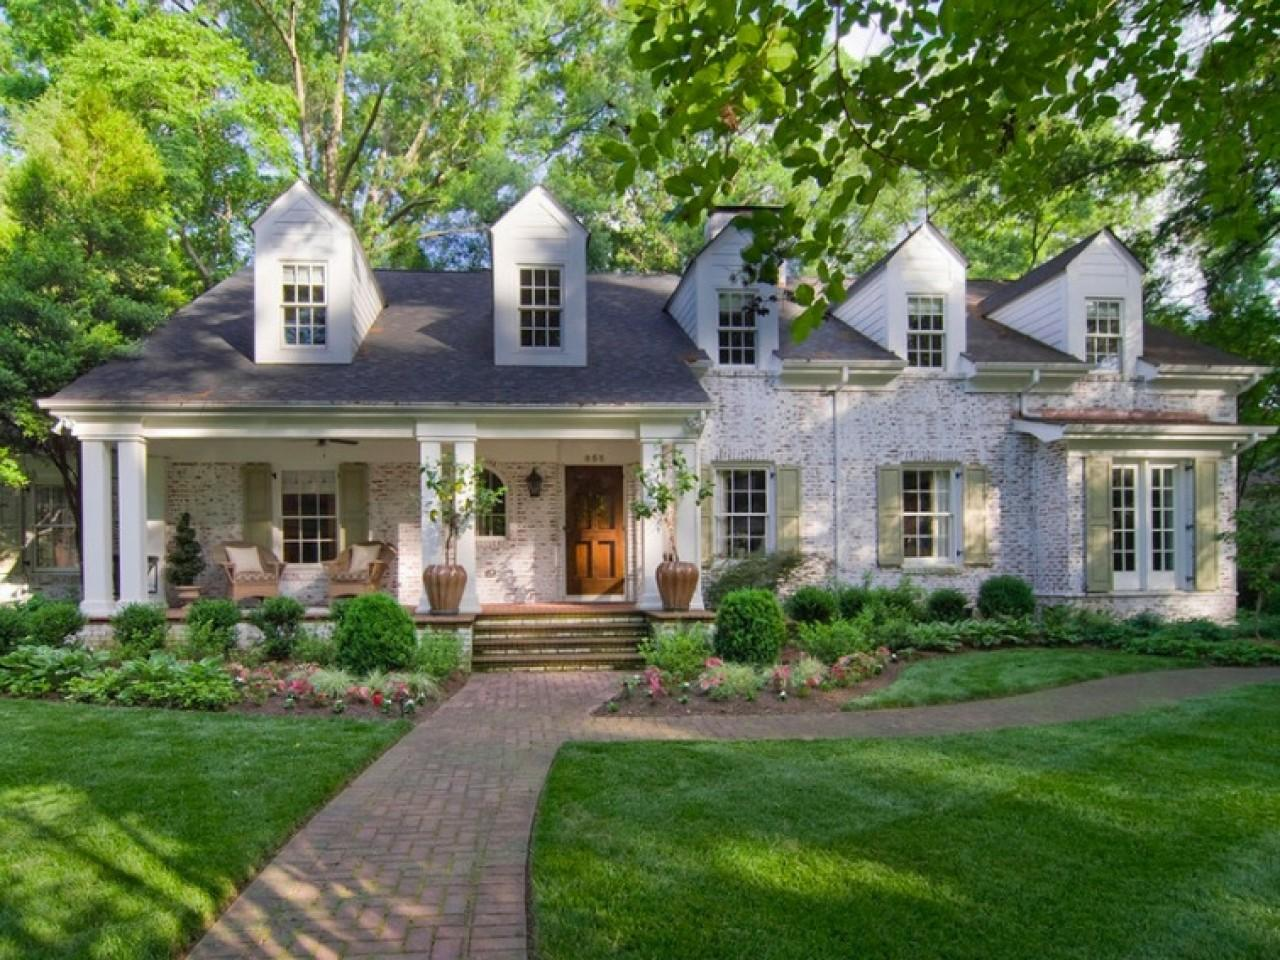 Exterior Brick Colors Lime Wash House White